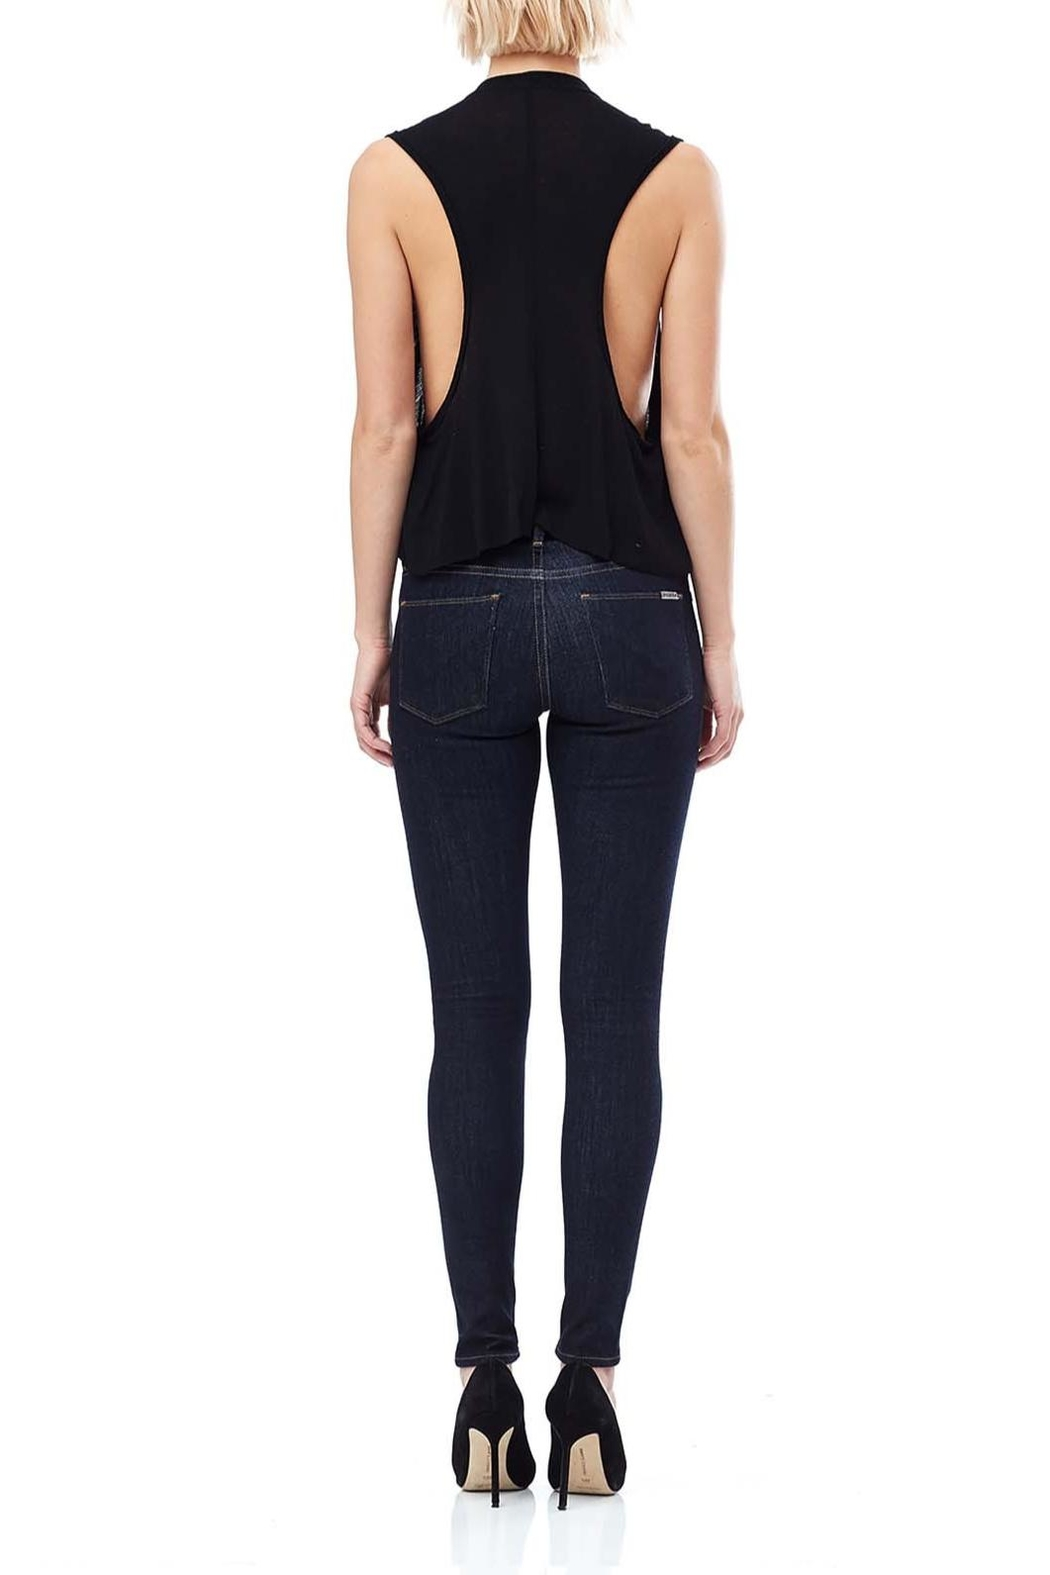 Hudson Jeans Timeless Essential Skinny Jeans - Side Cropped Image